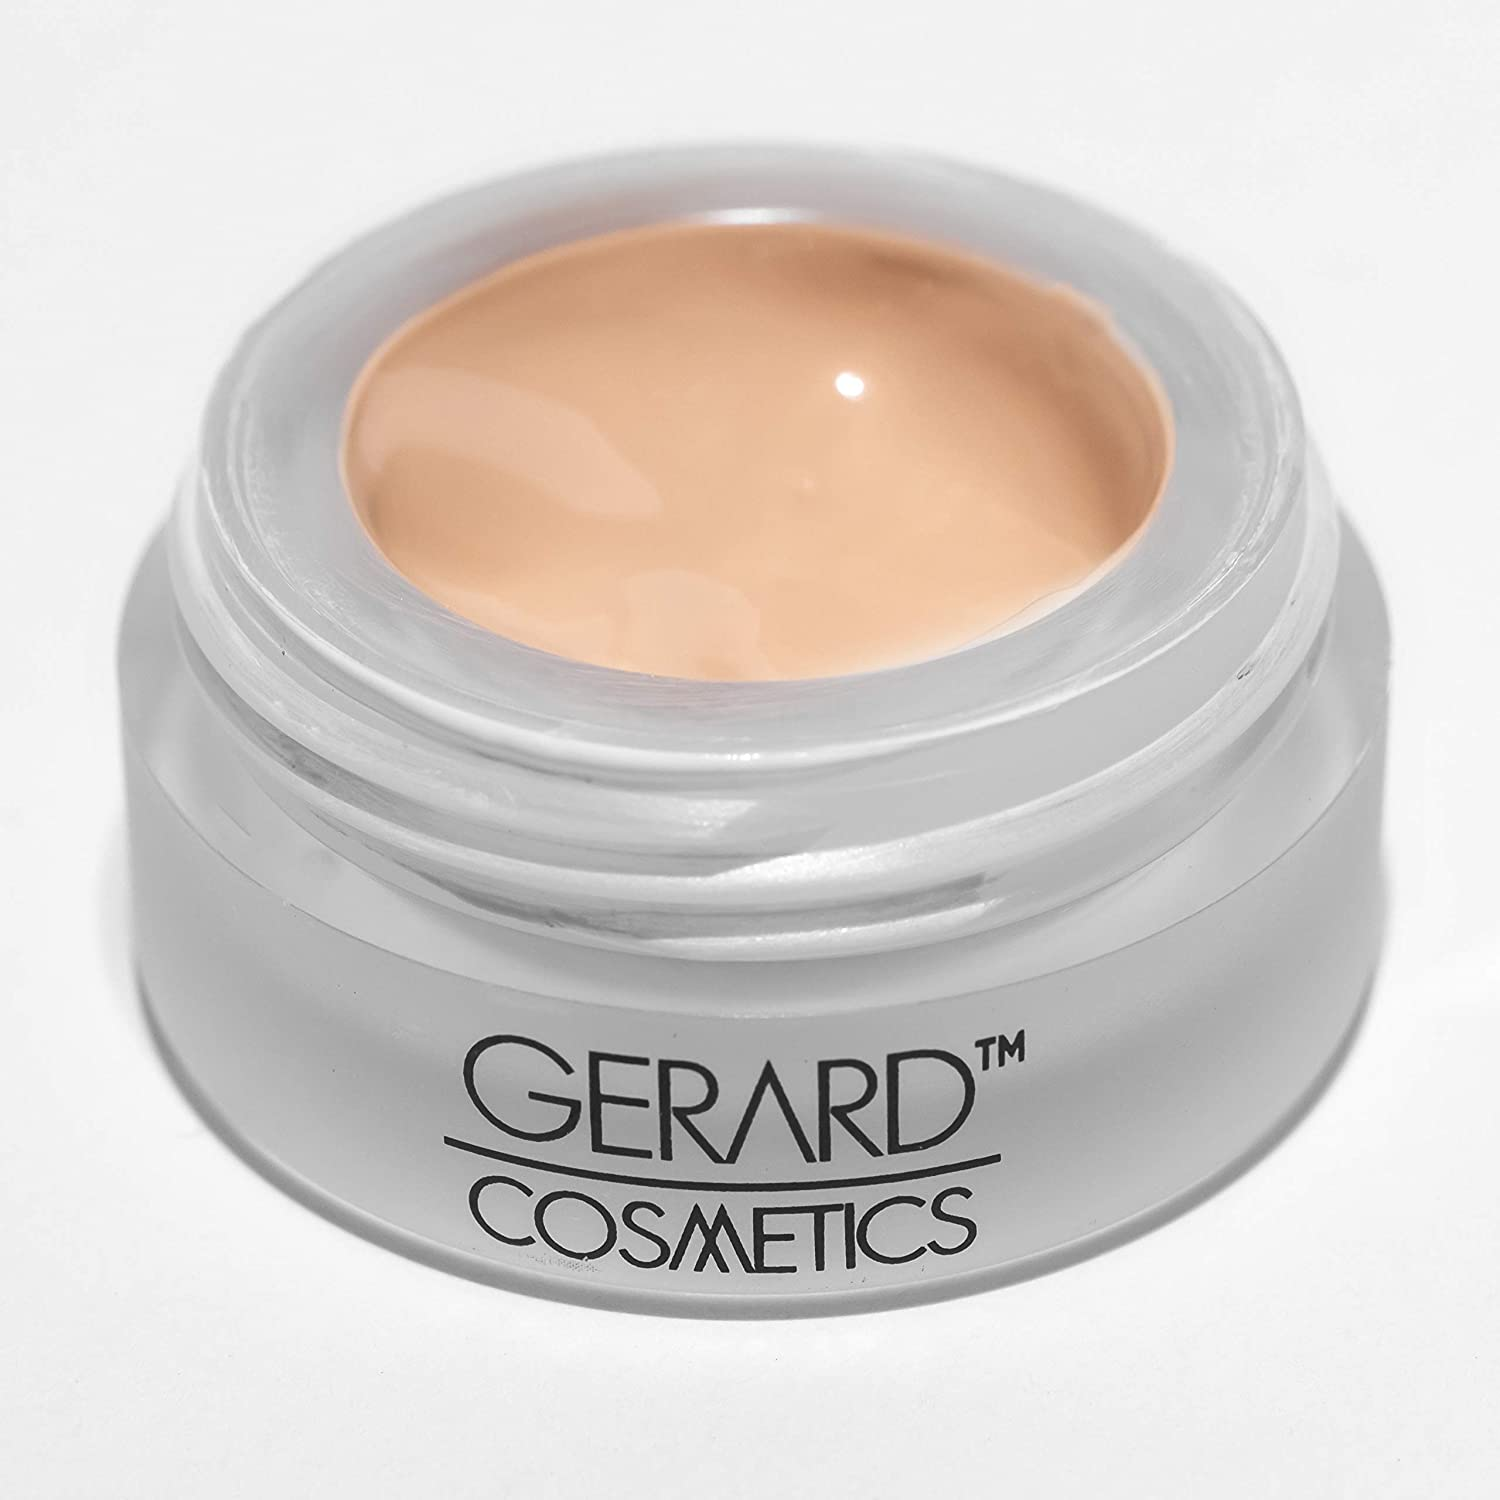 Gerard Cosmetics Clean Canvas FAIR Eye Concealer and Base Smudge Proof | Makeup Primer and Eyeshadow Base | Made in the USA | Vegan Formula | Cruelty Free